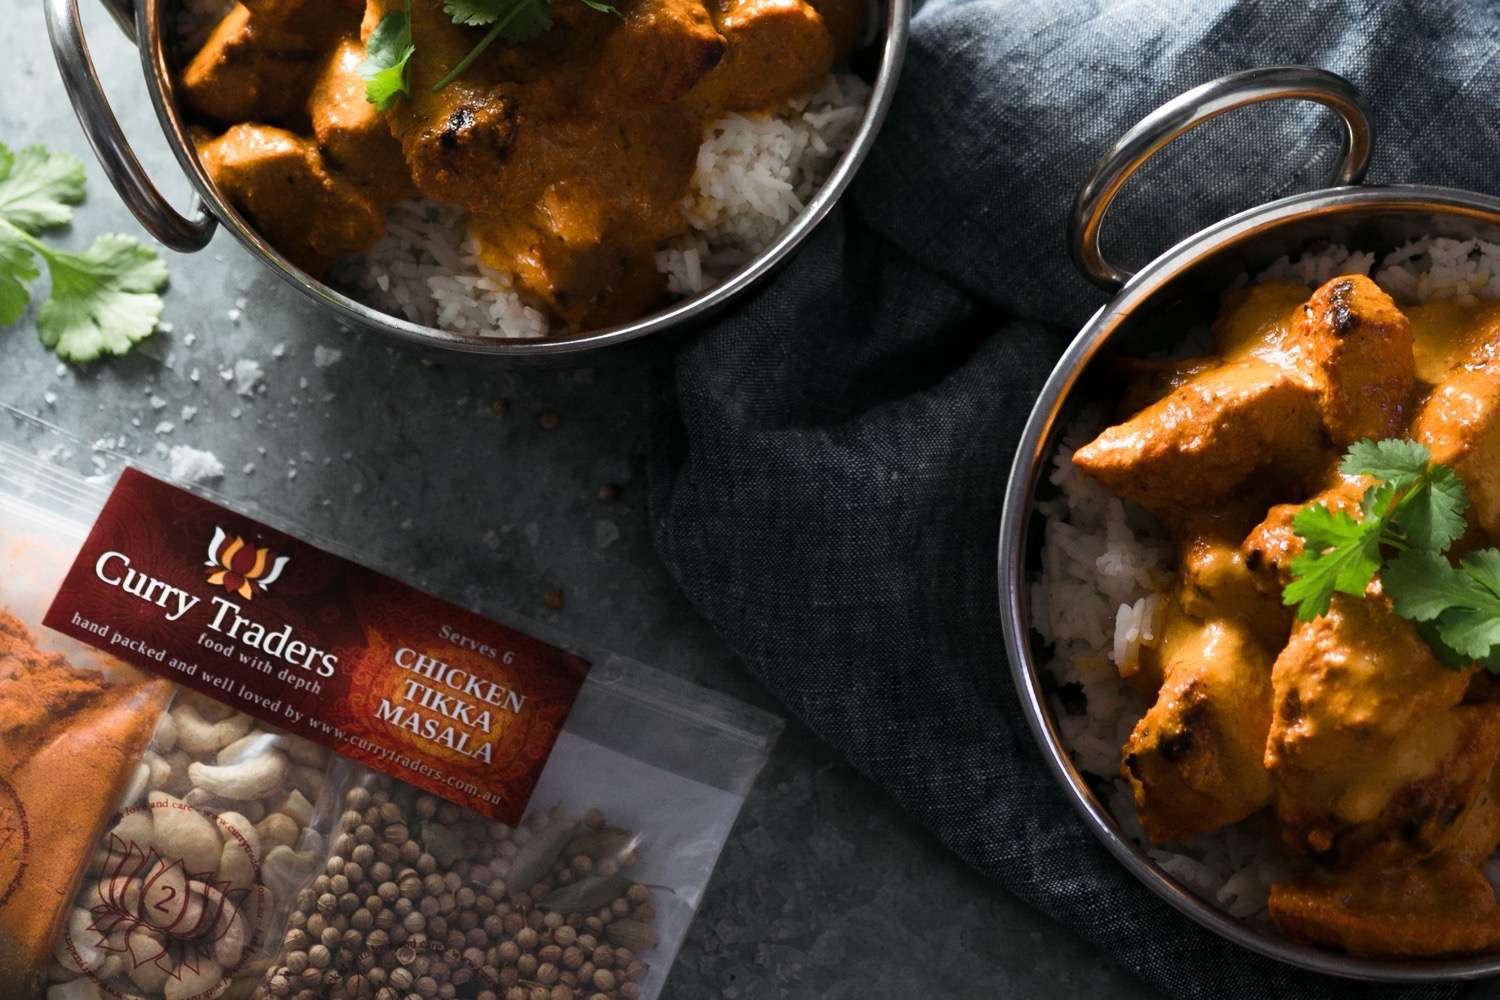 Chicken Tikka Masala easy to make at home gourmet kit